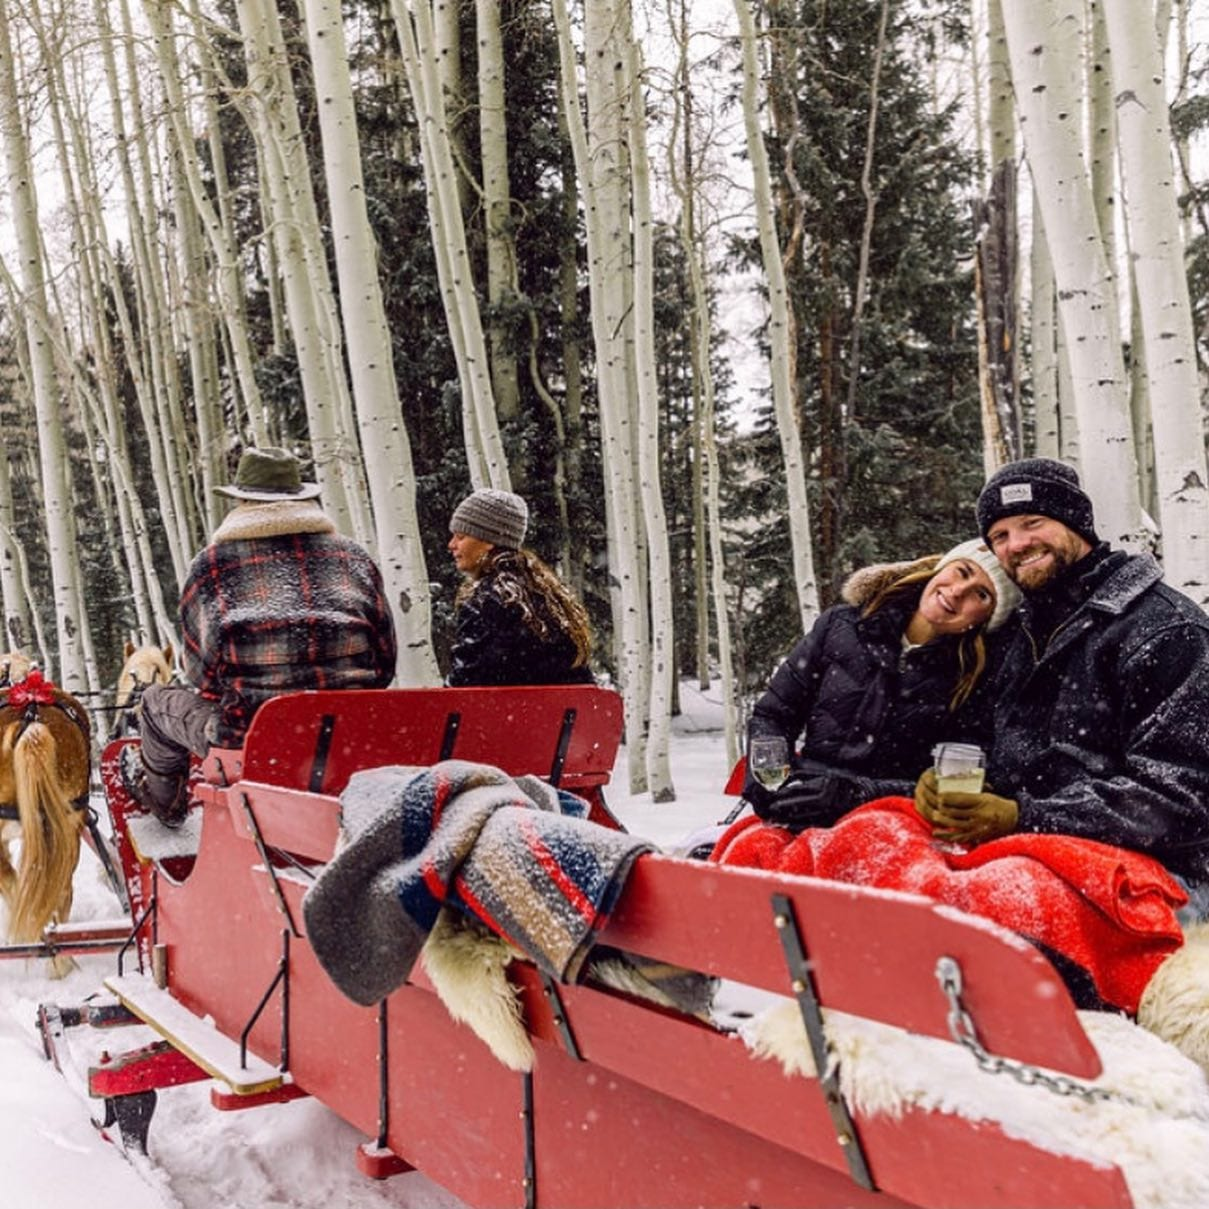 image of sleigh rides